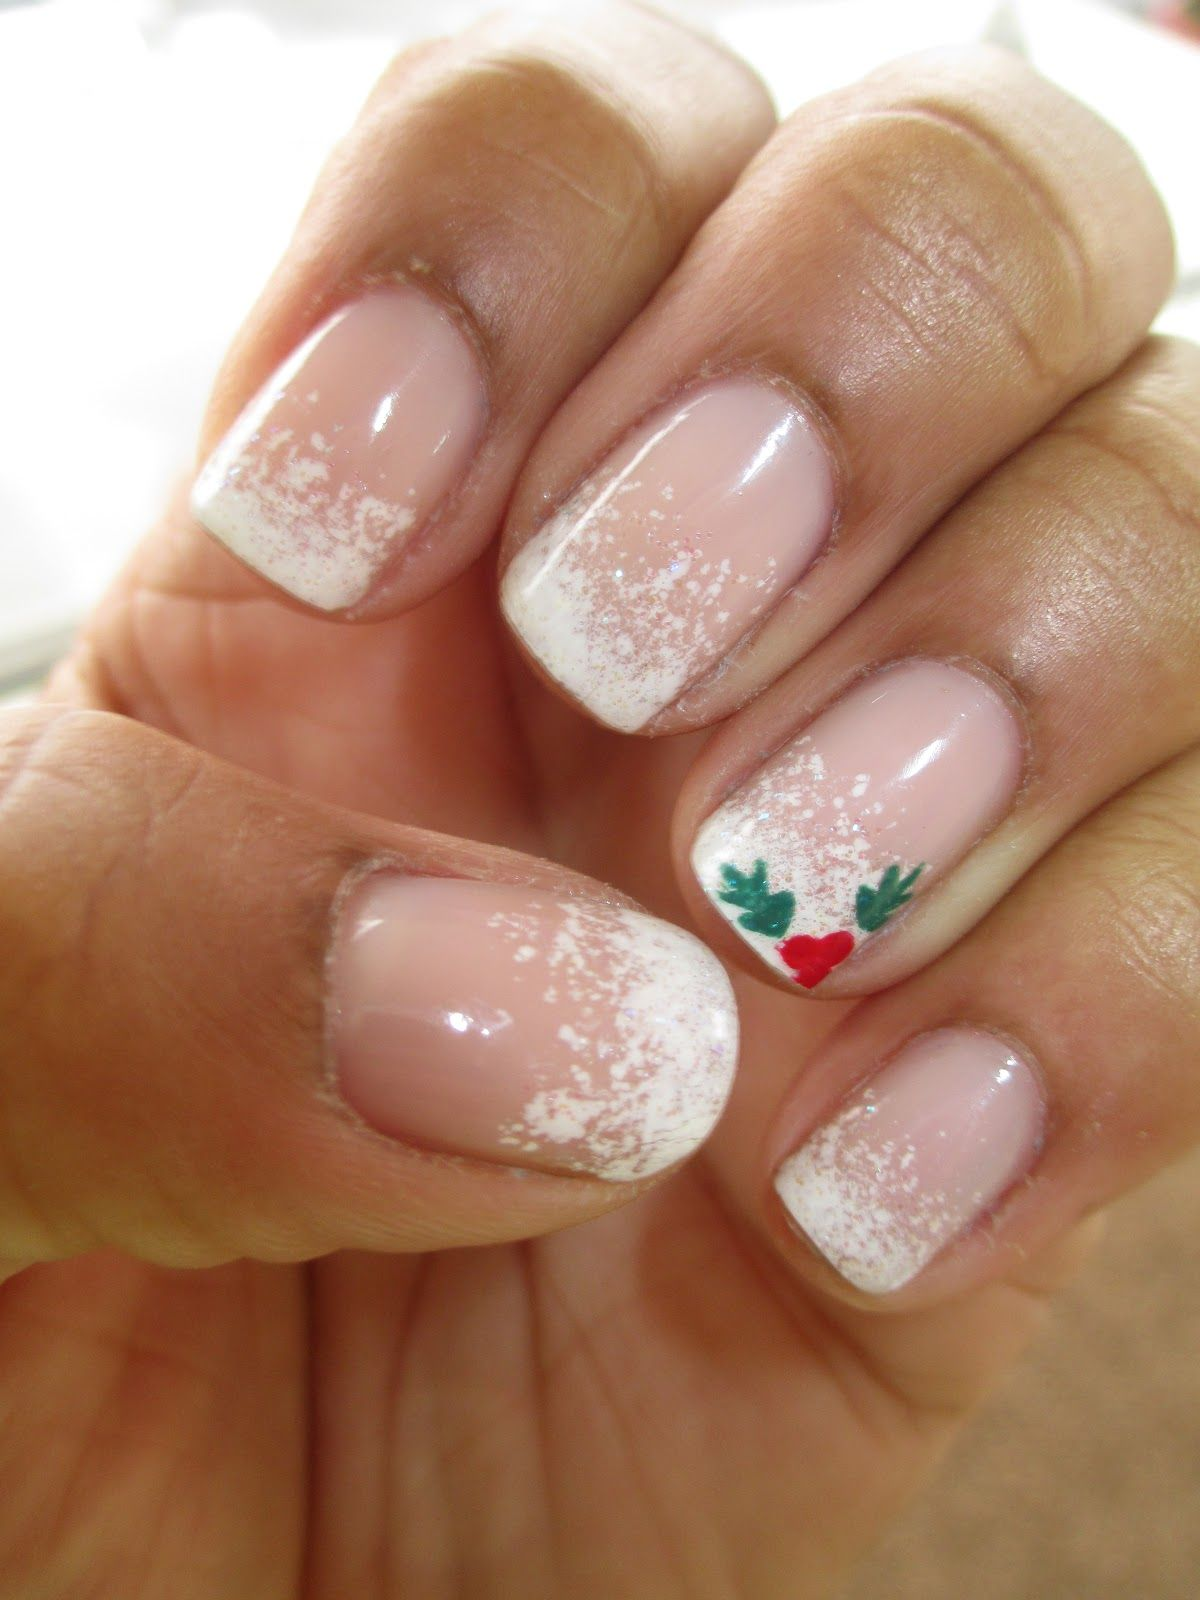 Image result for christmas french tip nail designs hair makeup image result for christmas french tip nail designs prinsesfo Gallery